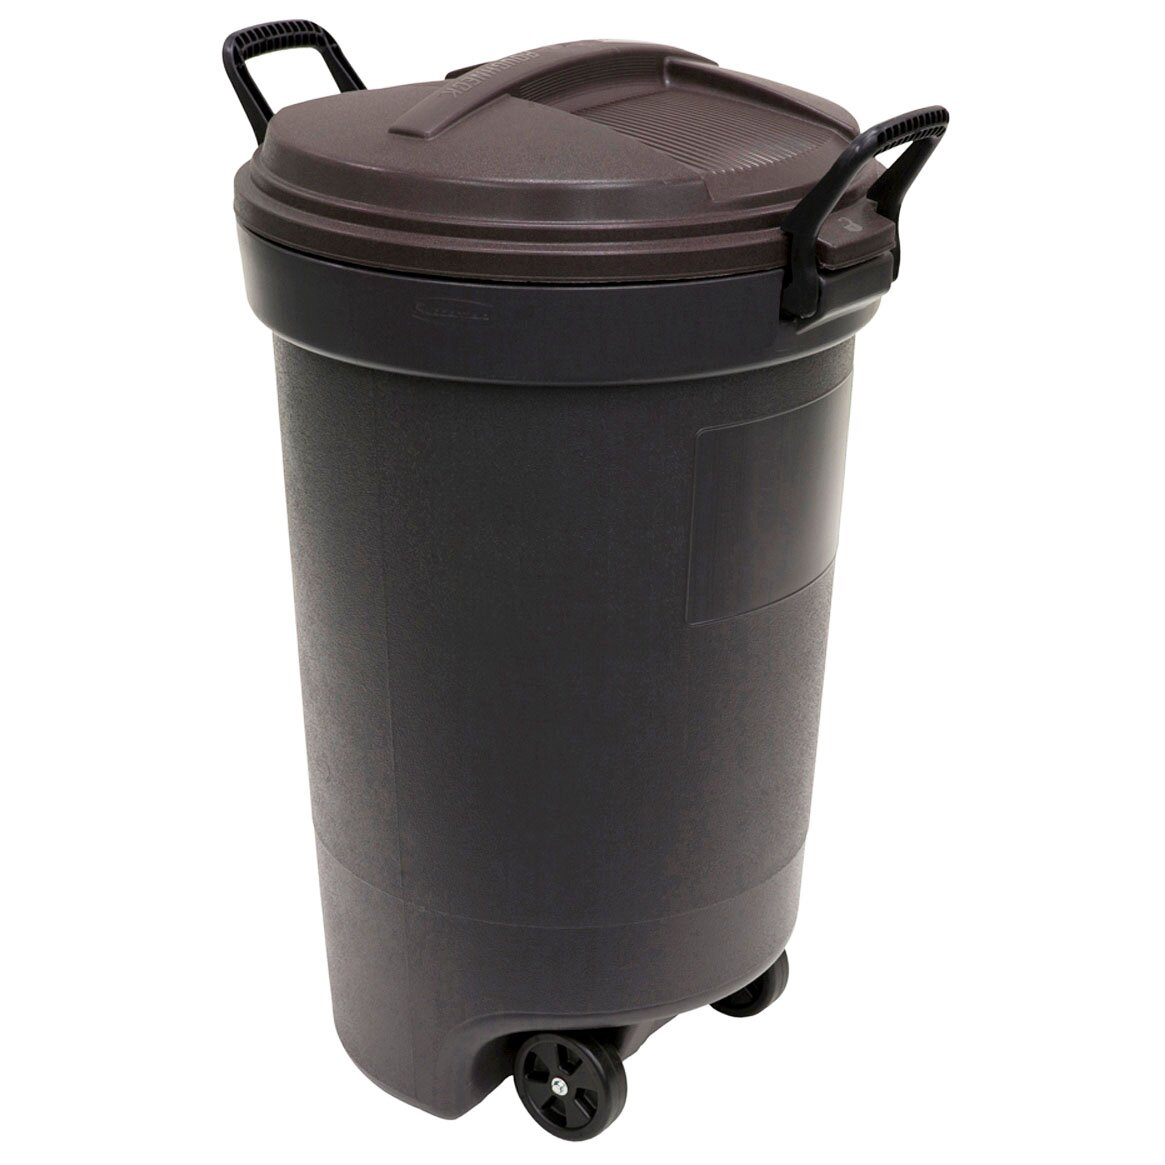 United Solutions 32 Gallon Rubbermaid Wheeled Trash Can & Reviews